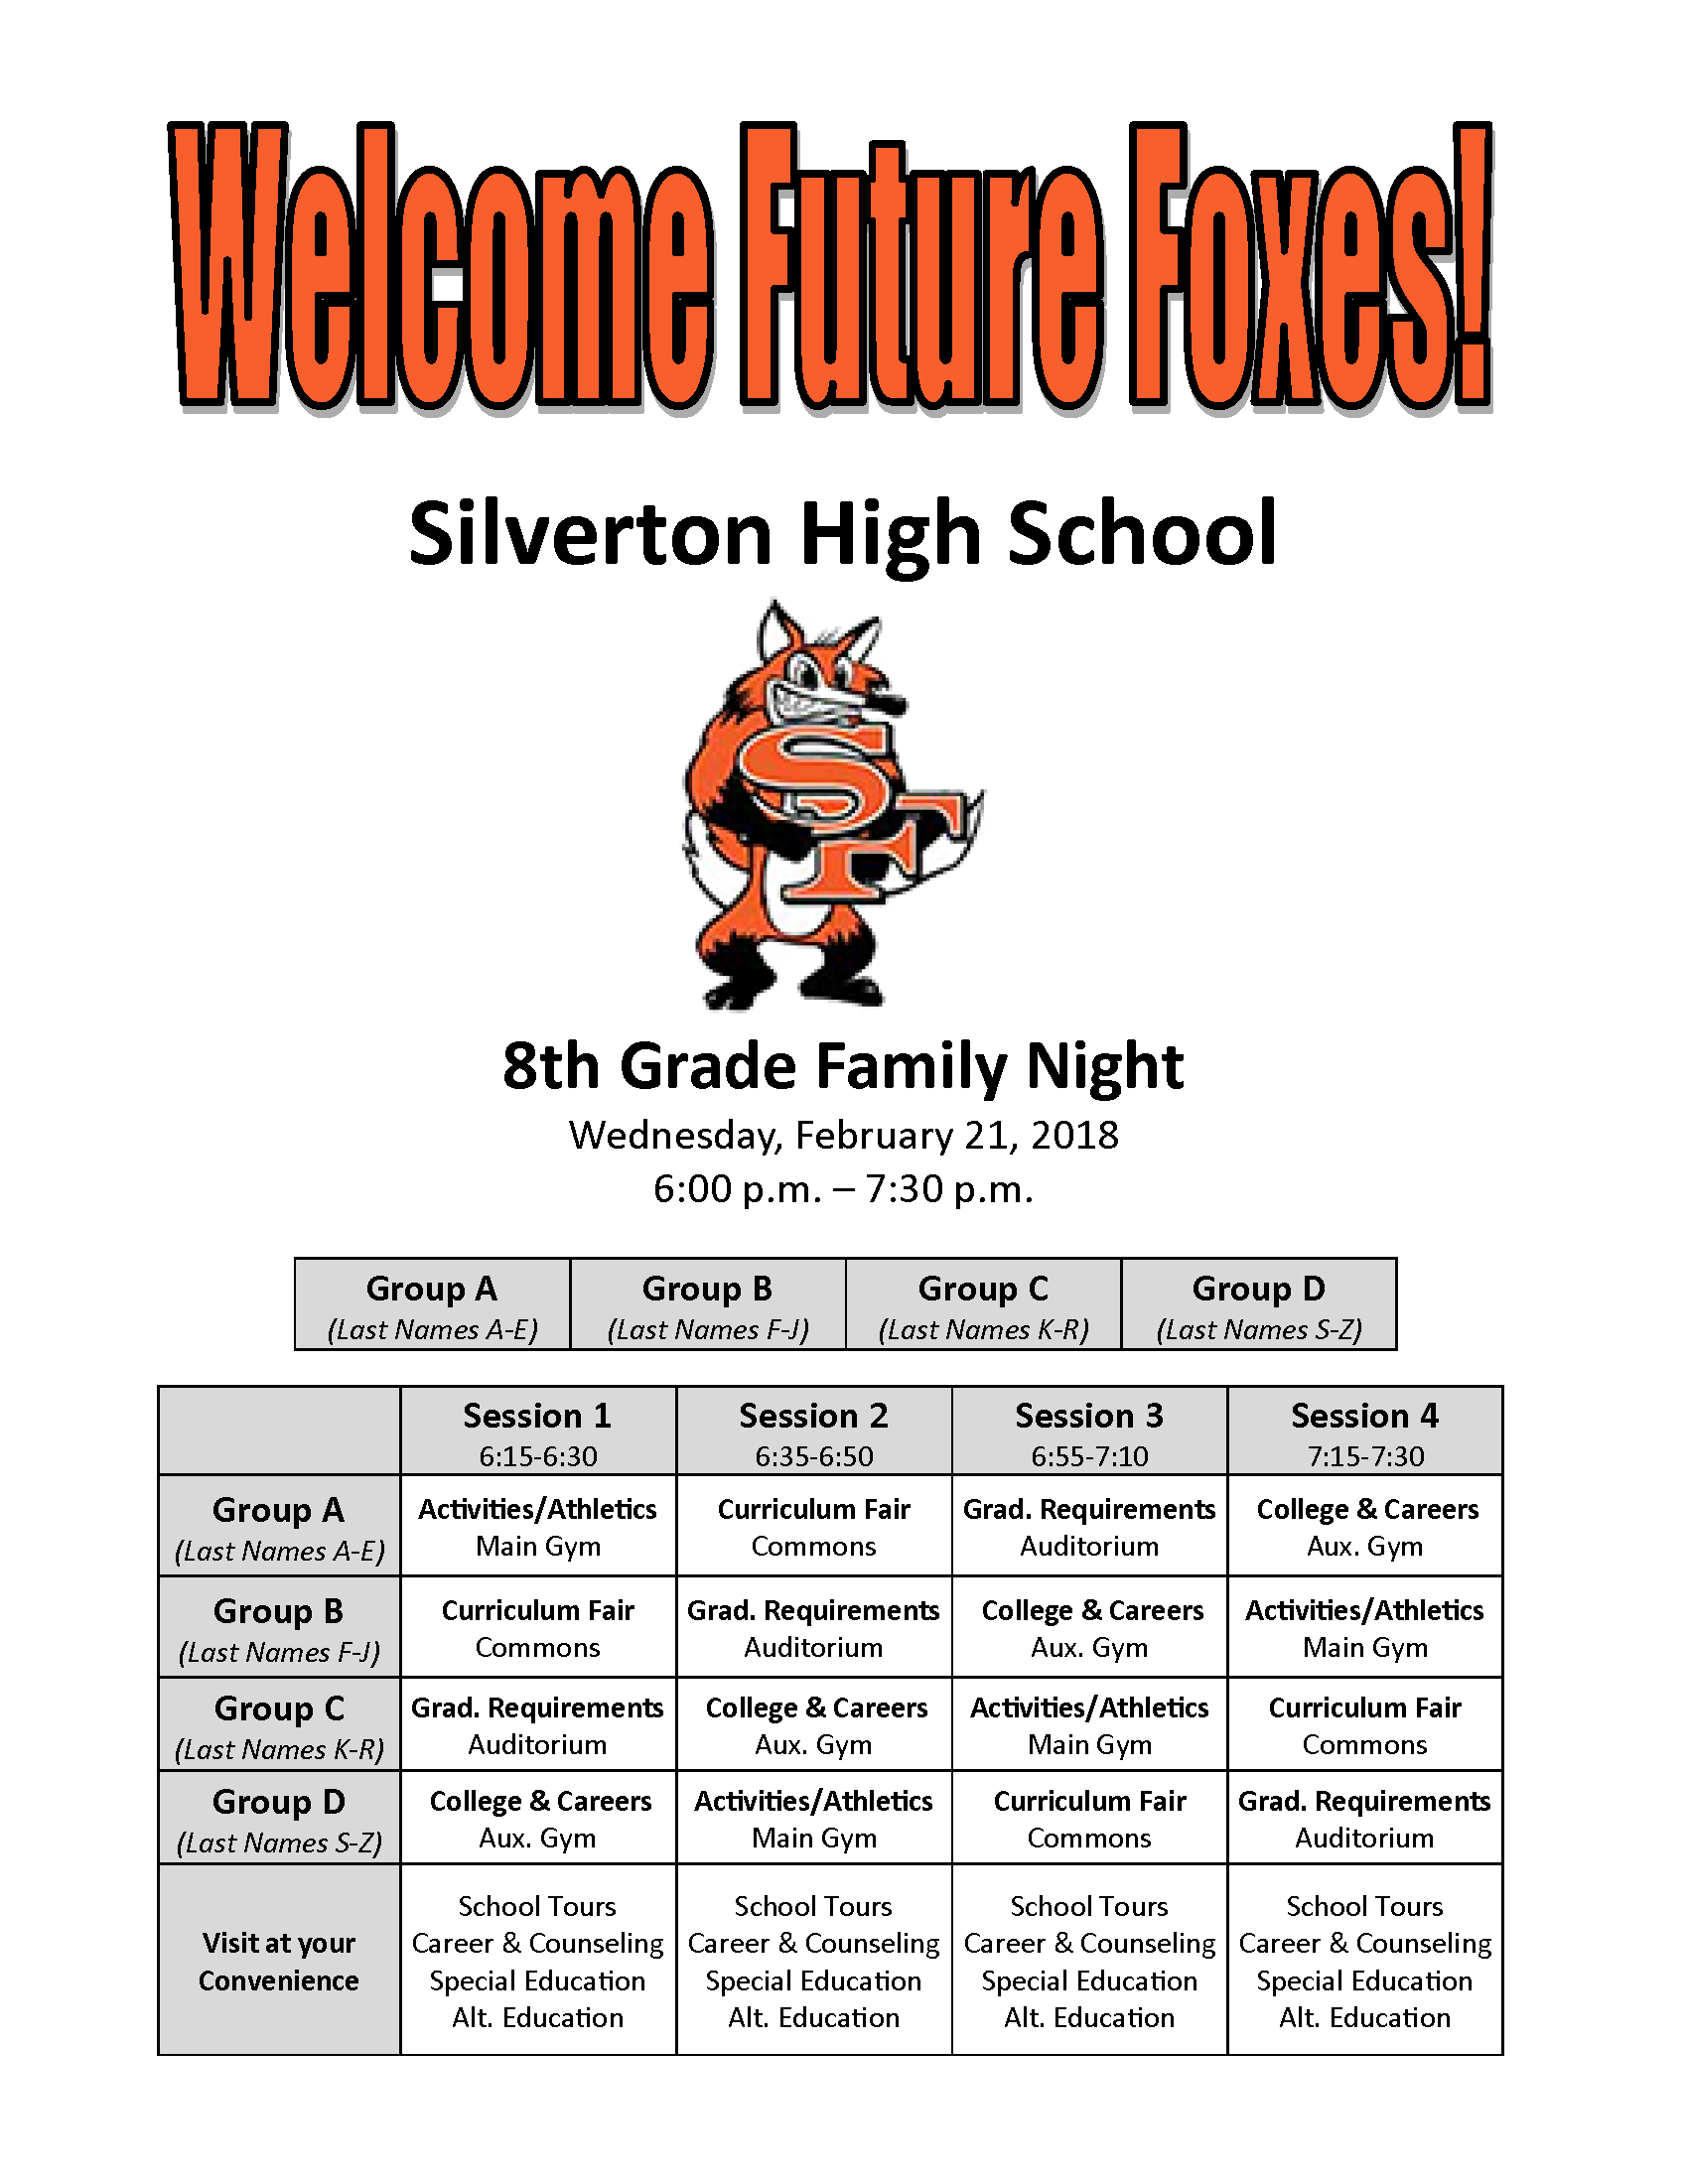 Flyer for 2018 8th grade family night